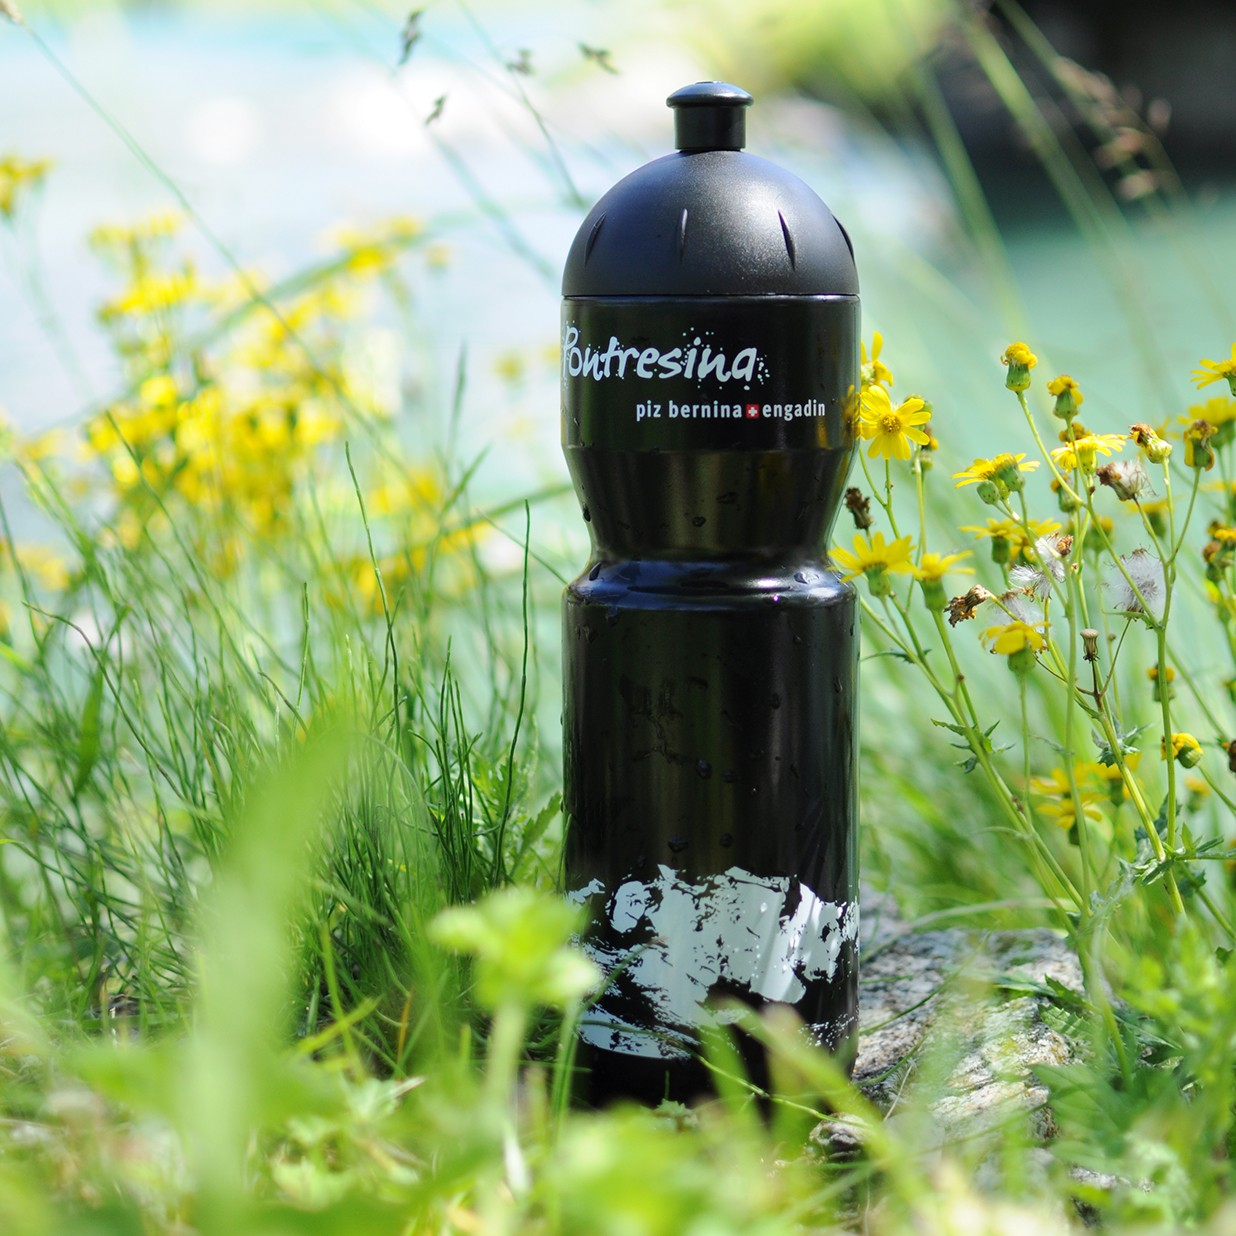 Pontresina drink bottle